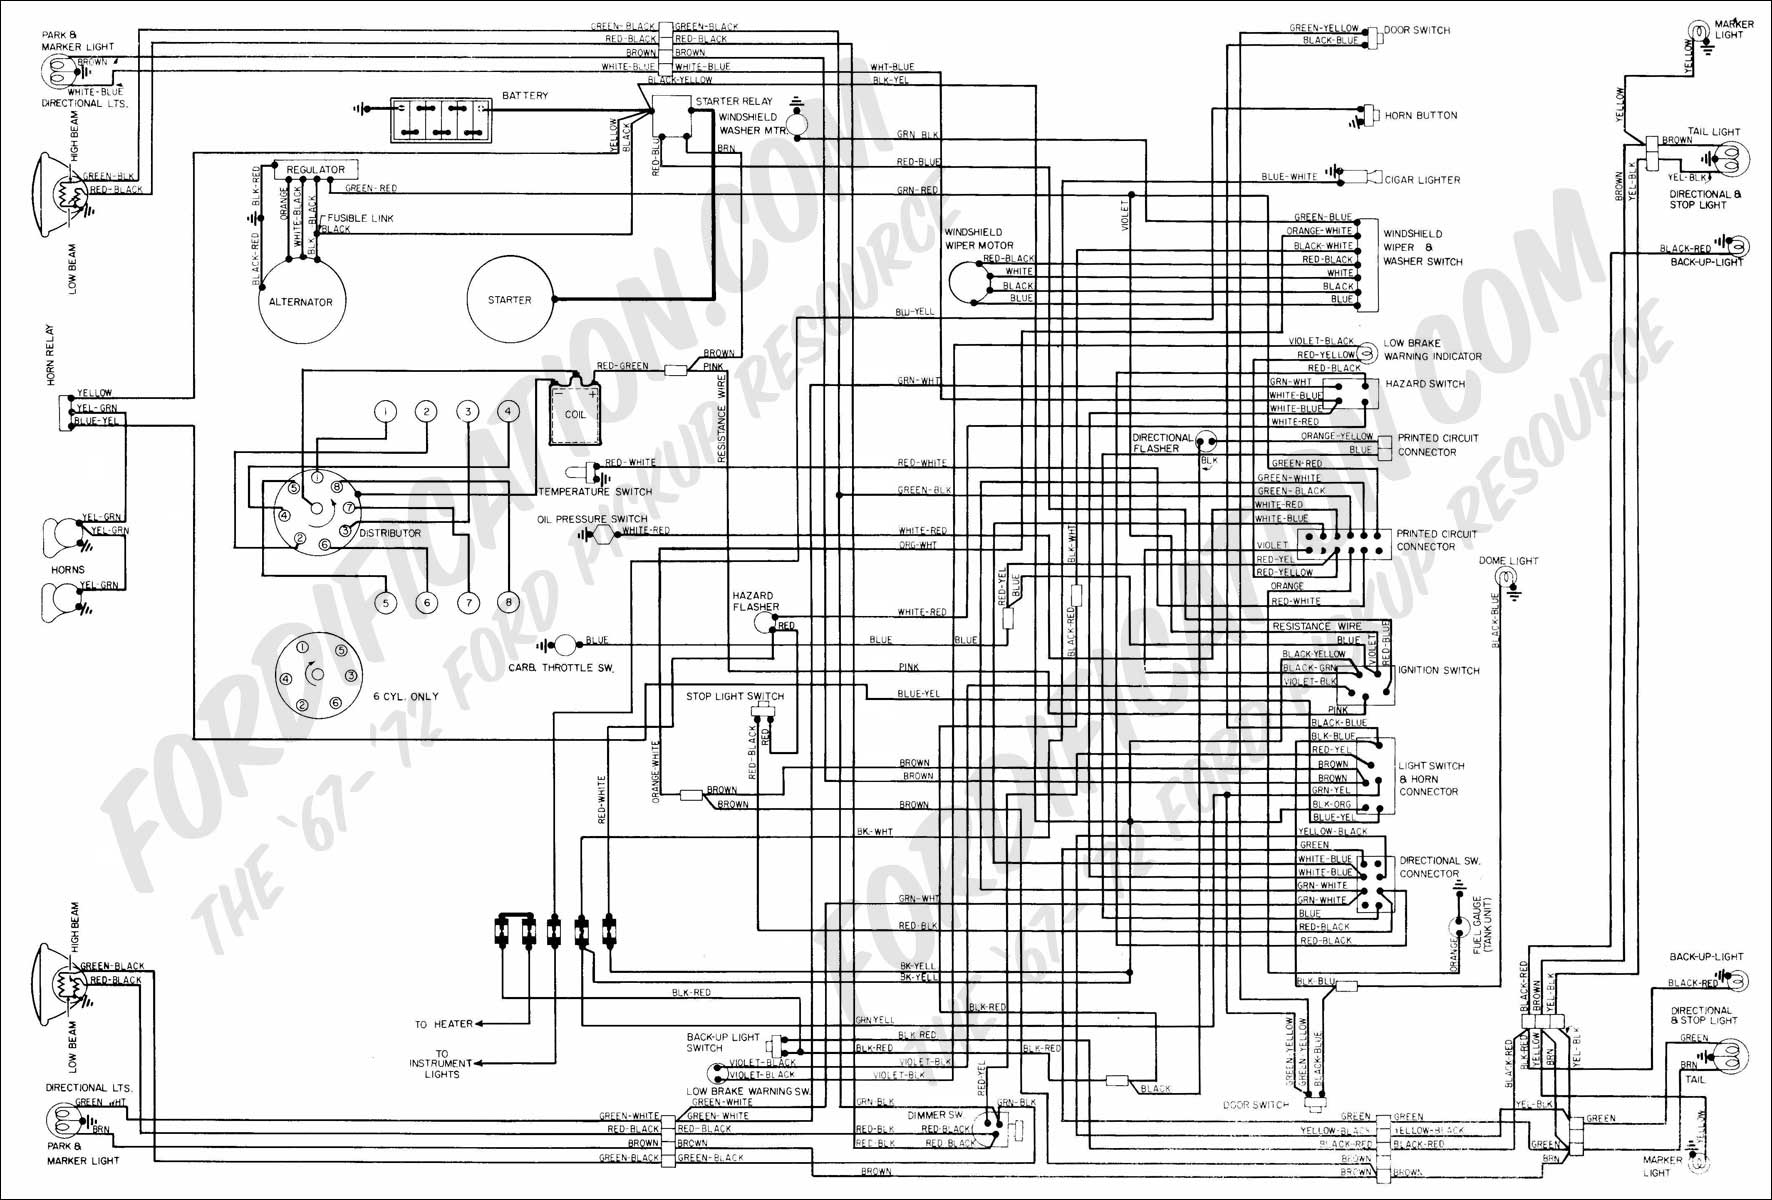 2004 ford explorer audio wiring diagram chevy diagrams abs f vectra c van